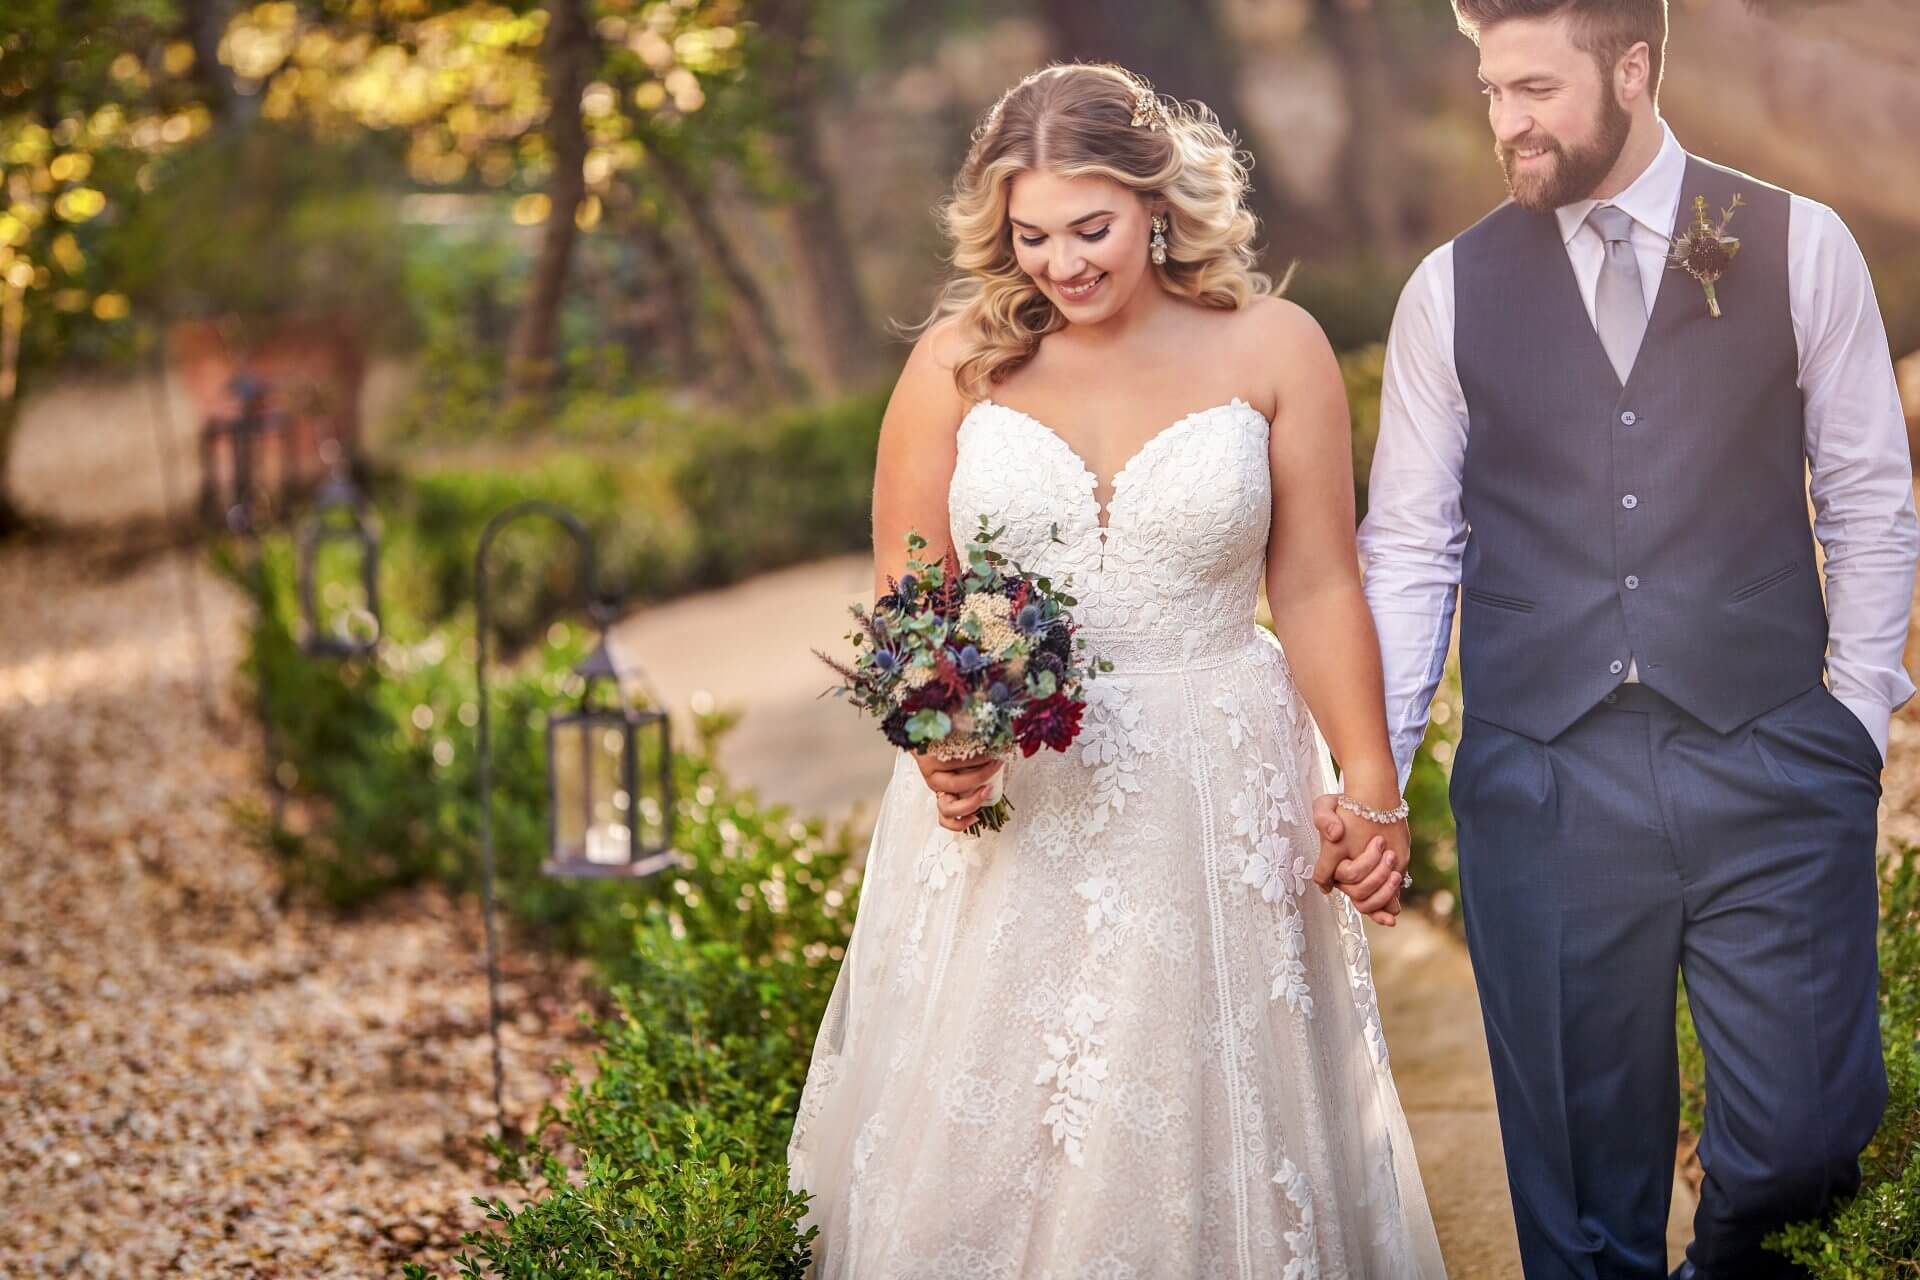 Wedding dresses for all sizes